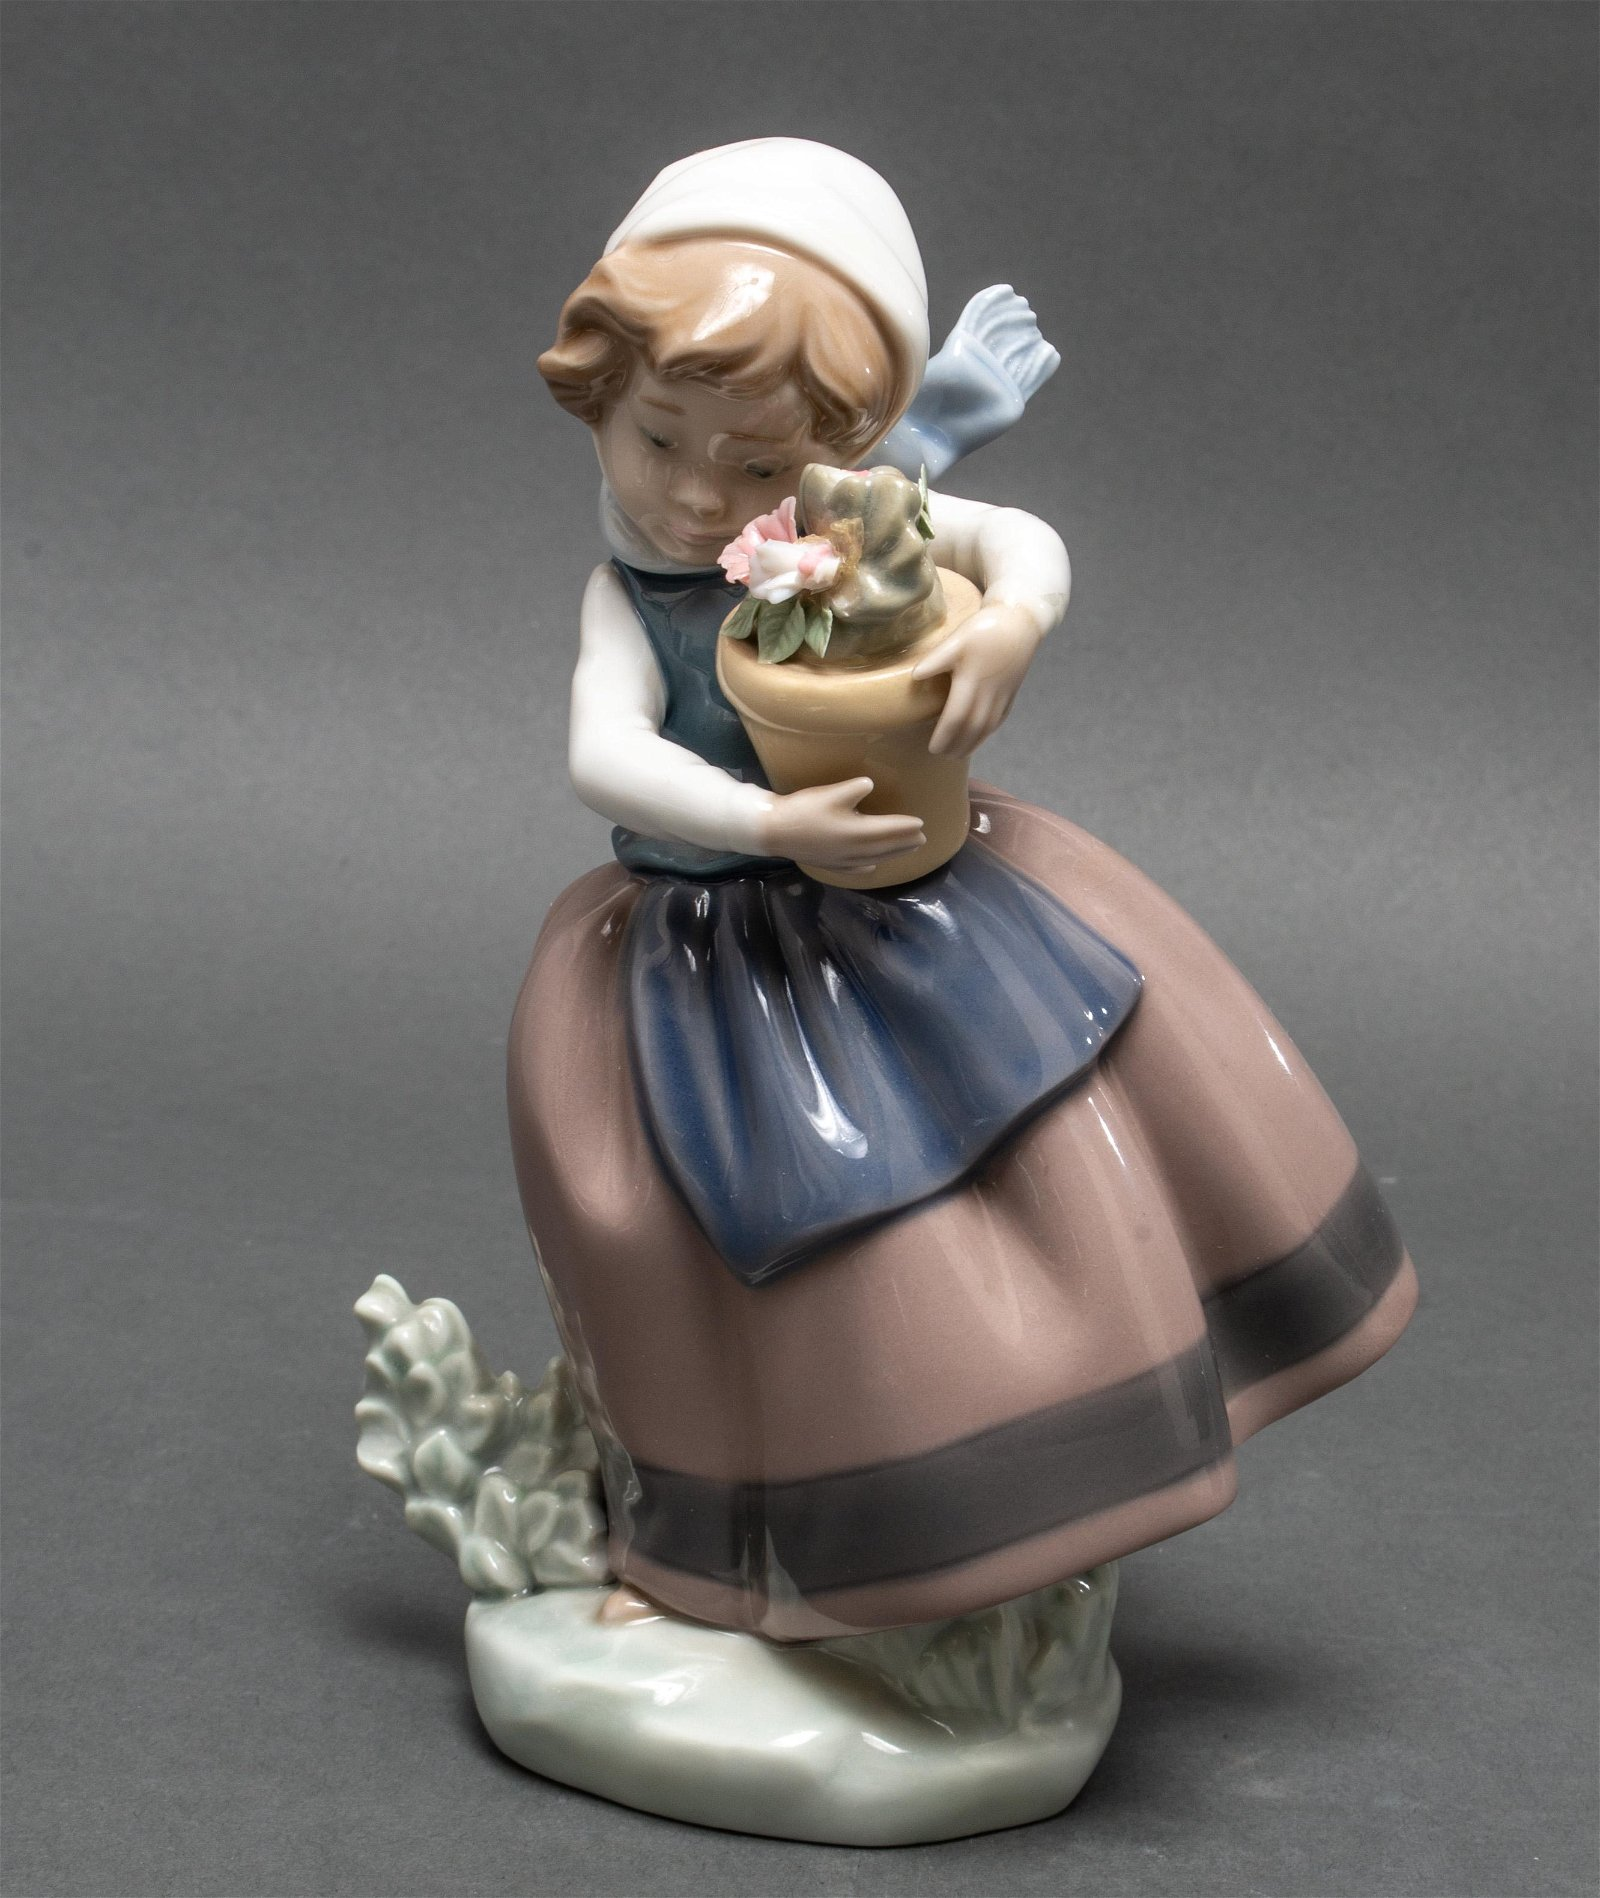 """Lladro Porcelain """"Girl With Flowers"""" Figurine"""